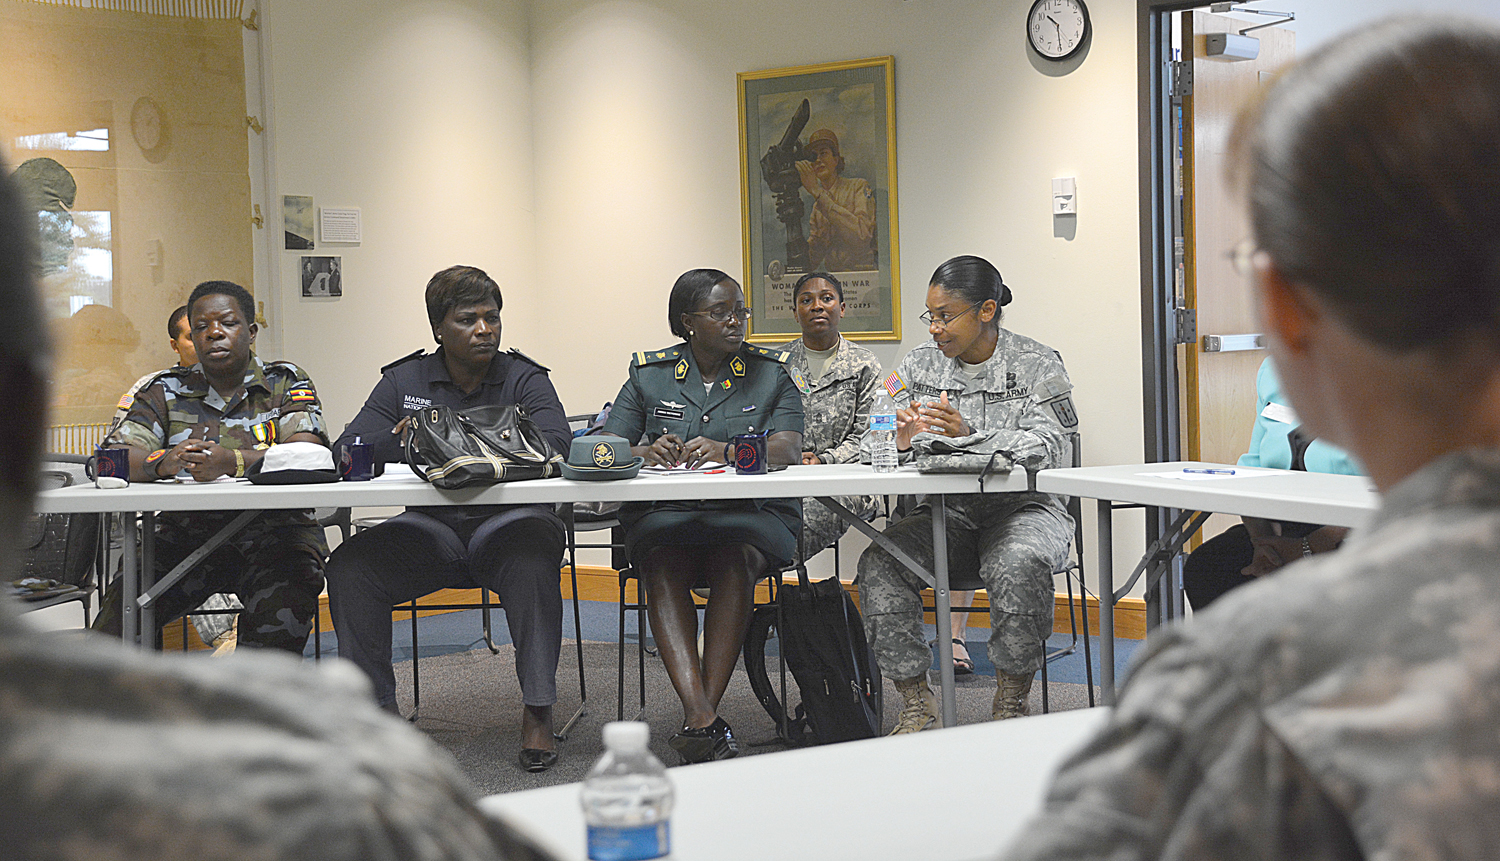 Col. Tamatha A. Patterson, commander, 23rd Quartermaster Brigade, right, gives a command brief to a delegation of military women from nine African countries during a visit to the Army Women's Museum Sept. 21. The group was part of the Women's Communications Forum, which is a military-to-military engagement through U.S. Africa Command that sent 11 foreign communications officers and senior NCOs to the United States. The forums support's the command's mission to build the military capacity of partner nations in Africa while also supporting the president's National Action Plan on Women's Peace and Security. (Photo by Amy Perry, Fort Lee Public Affairs)